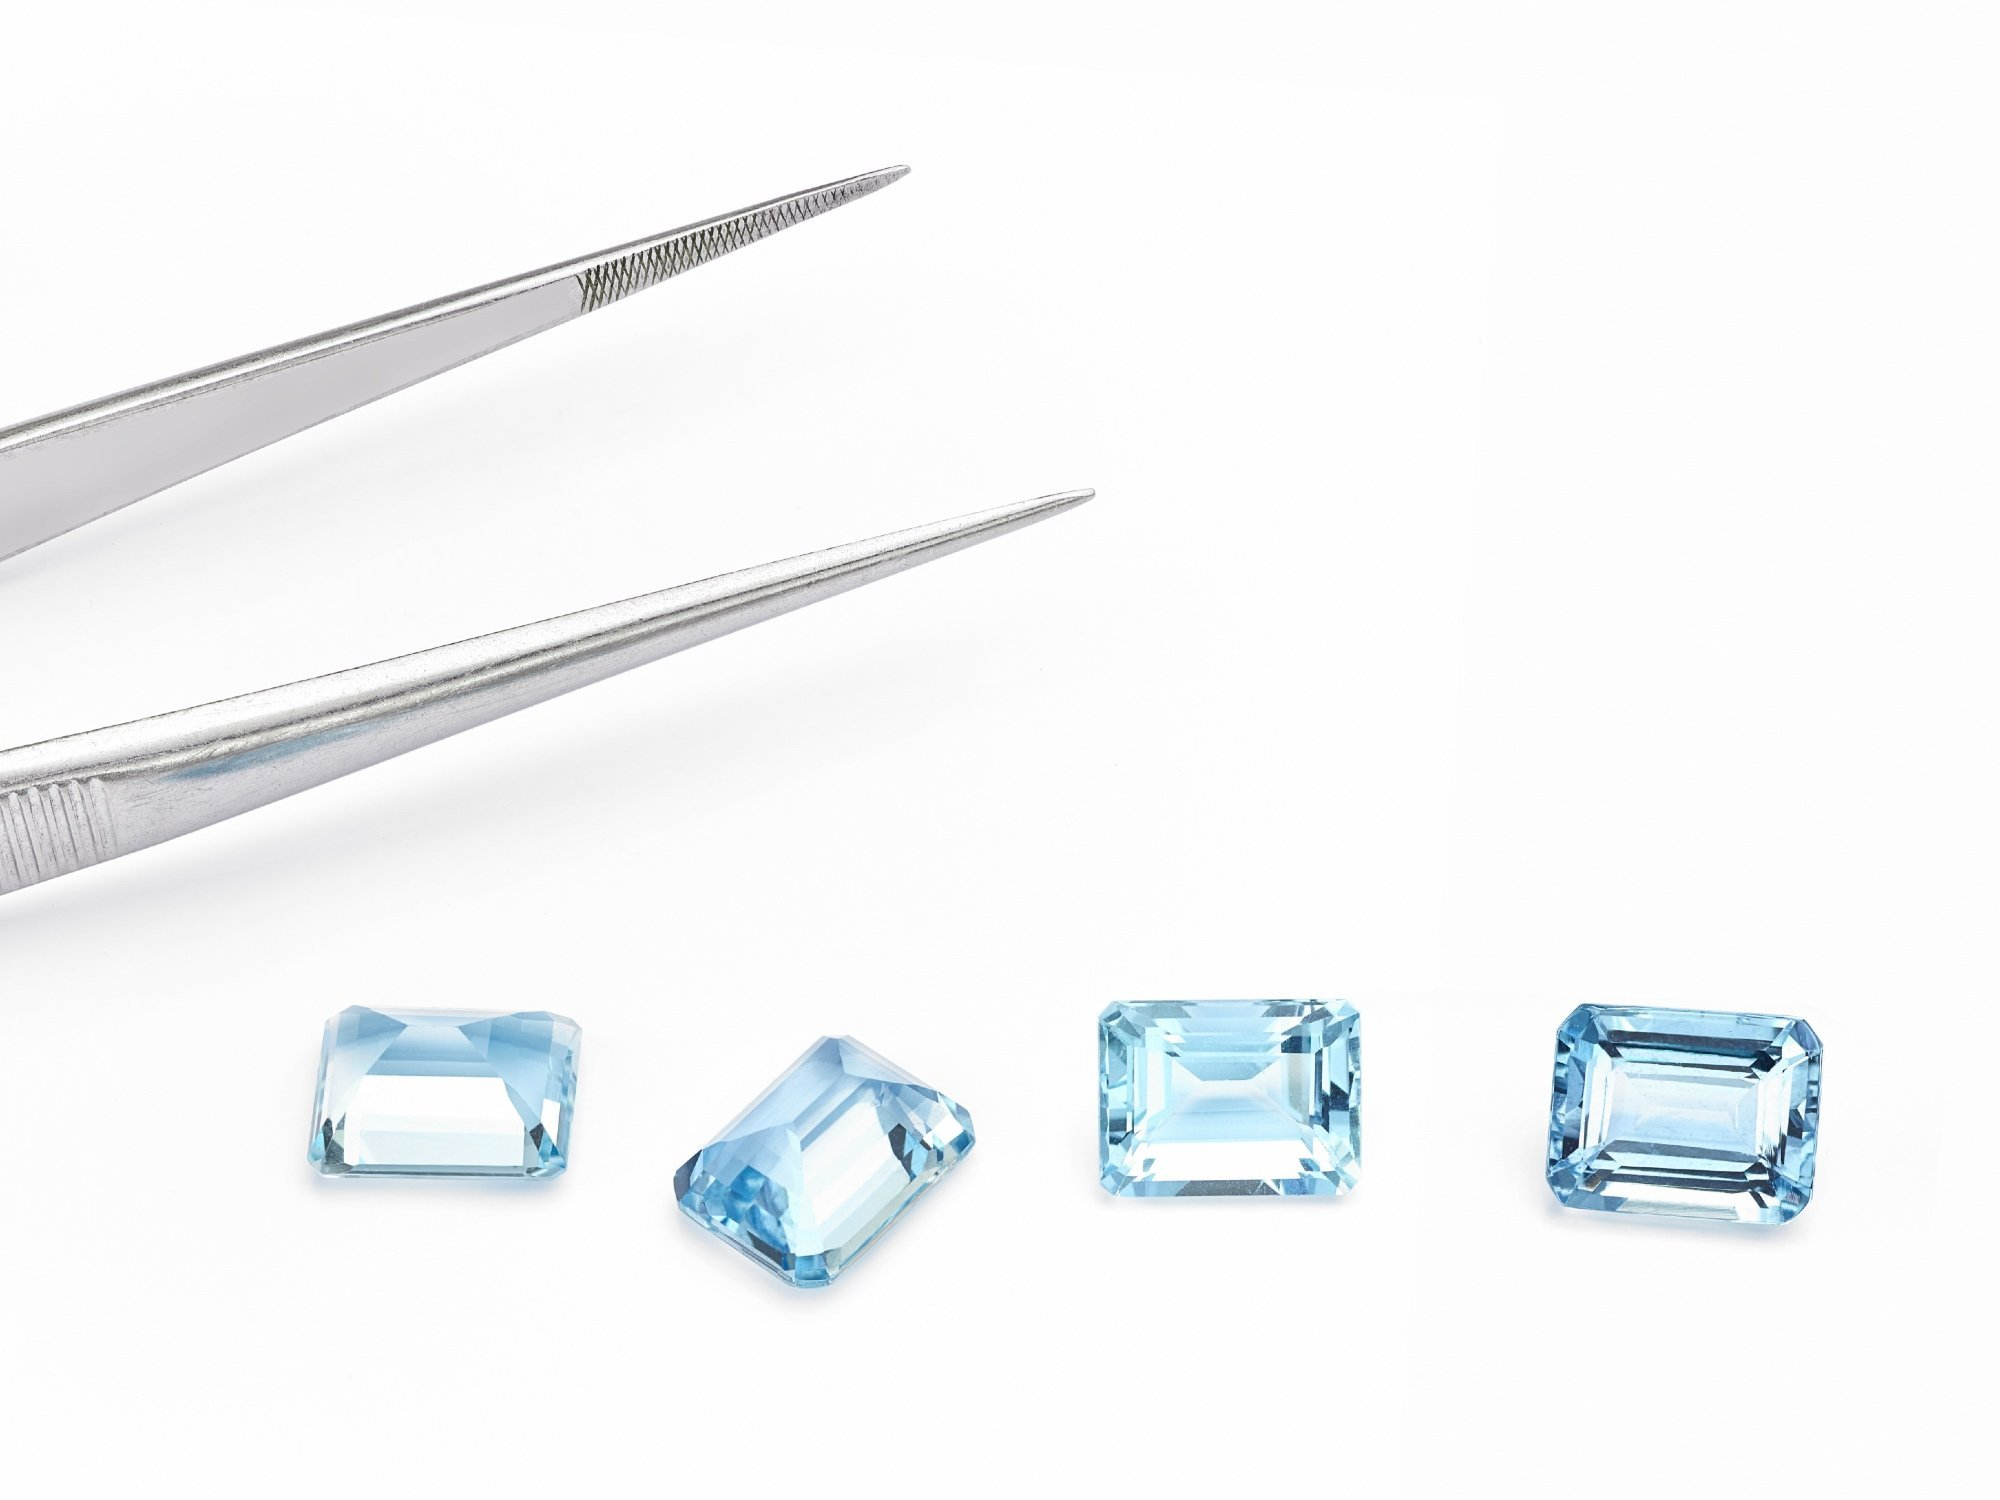 Emerald Cut Aquamarine Gemstones | Diamond Buzz